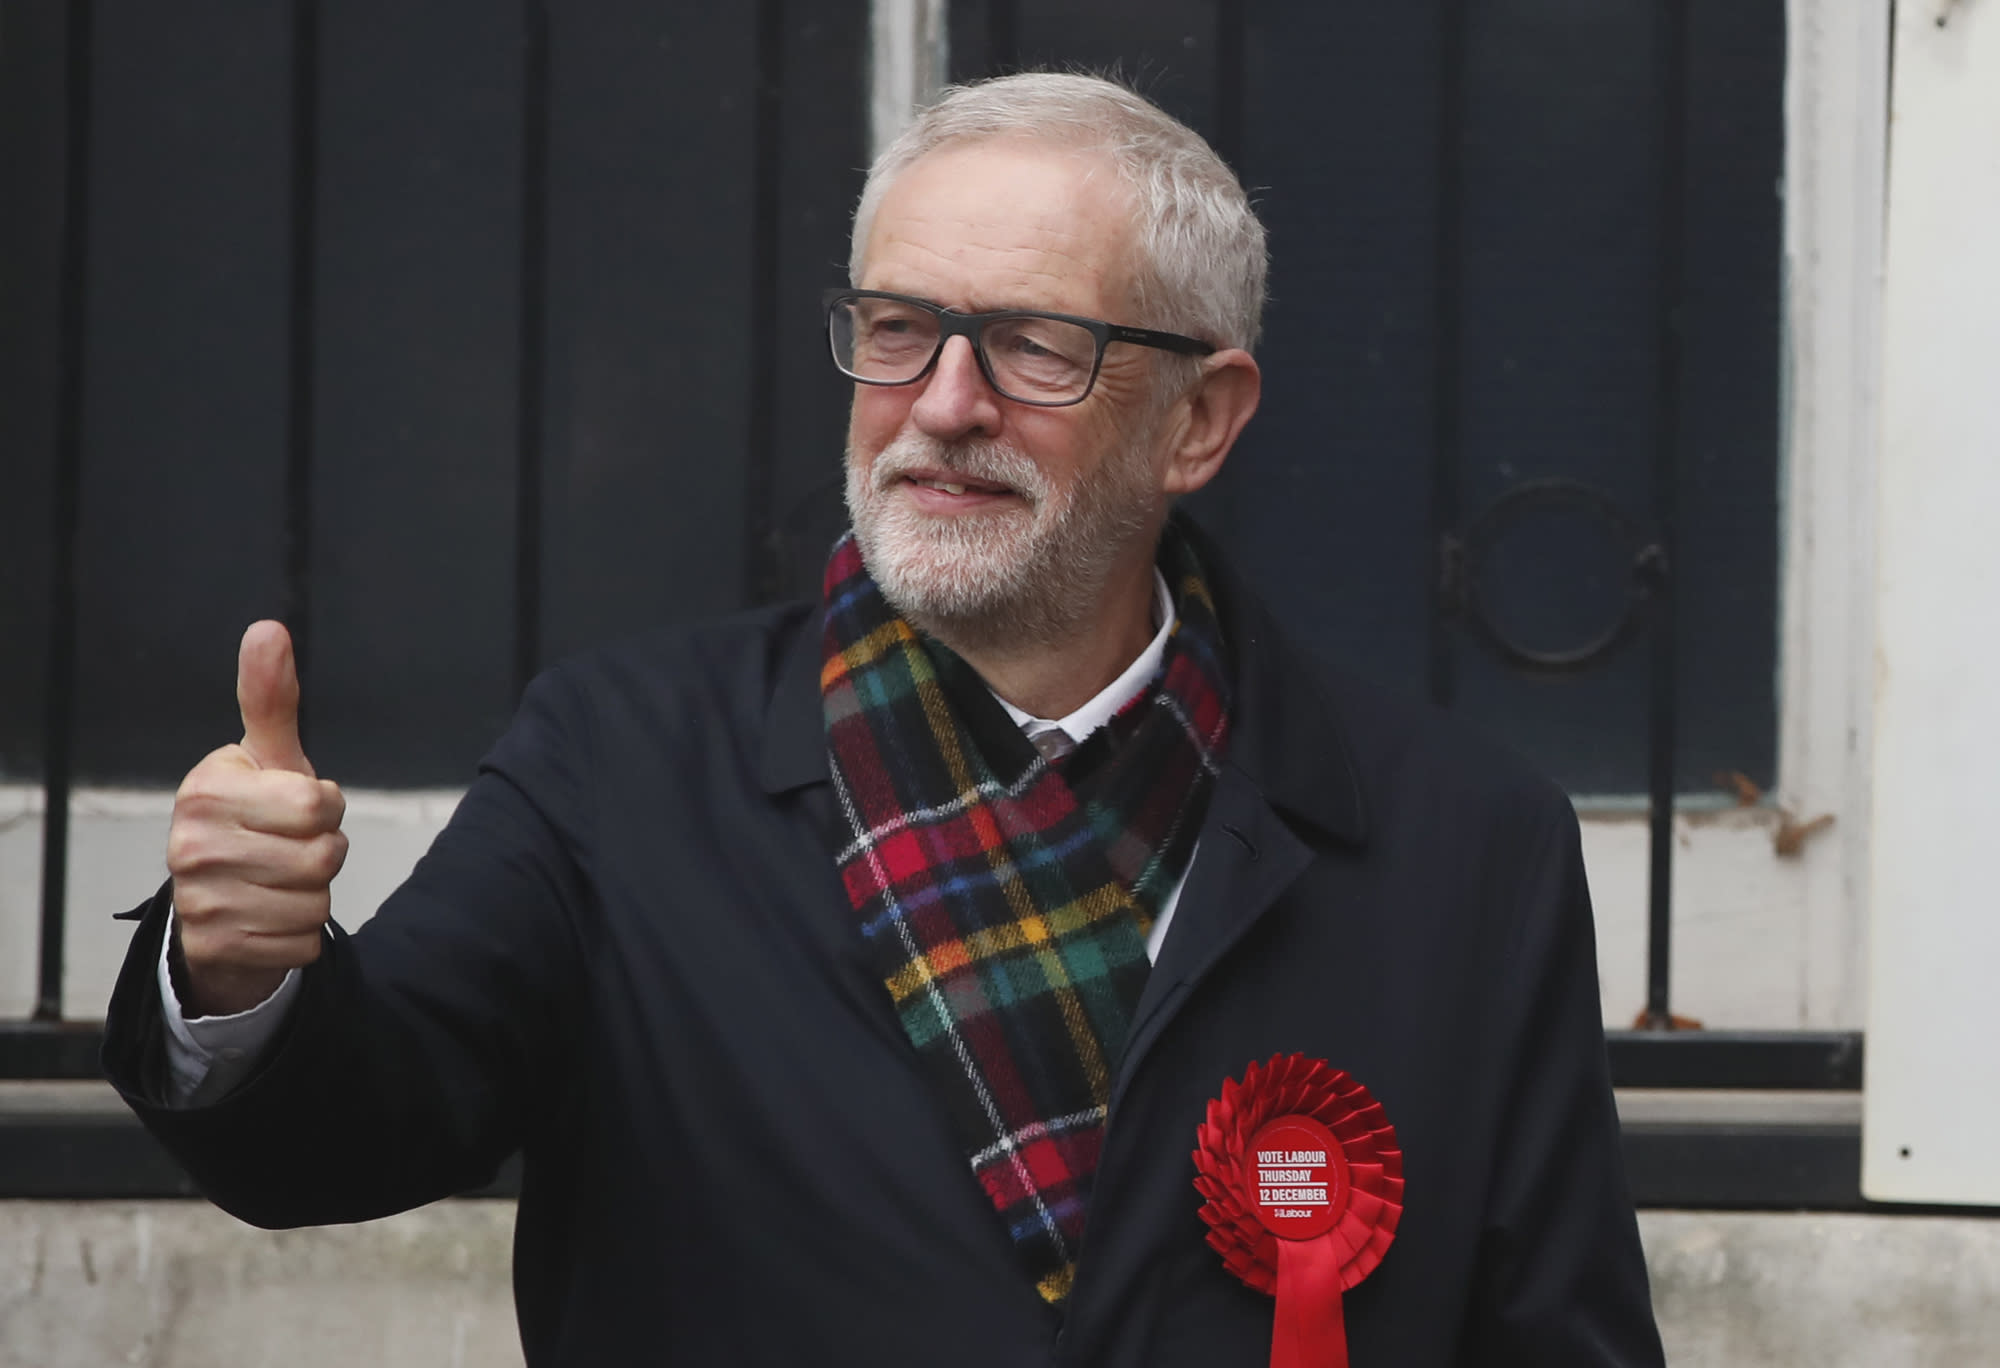 Ex-Labour leader Jeremy Corbyn reinstated to UK party